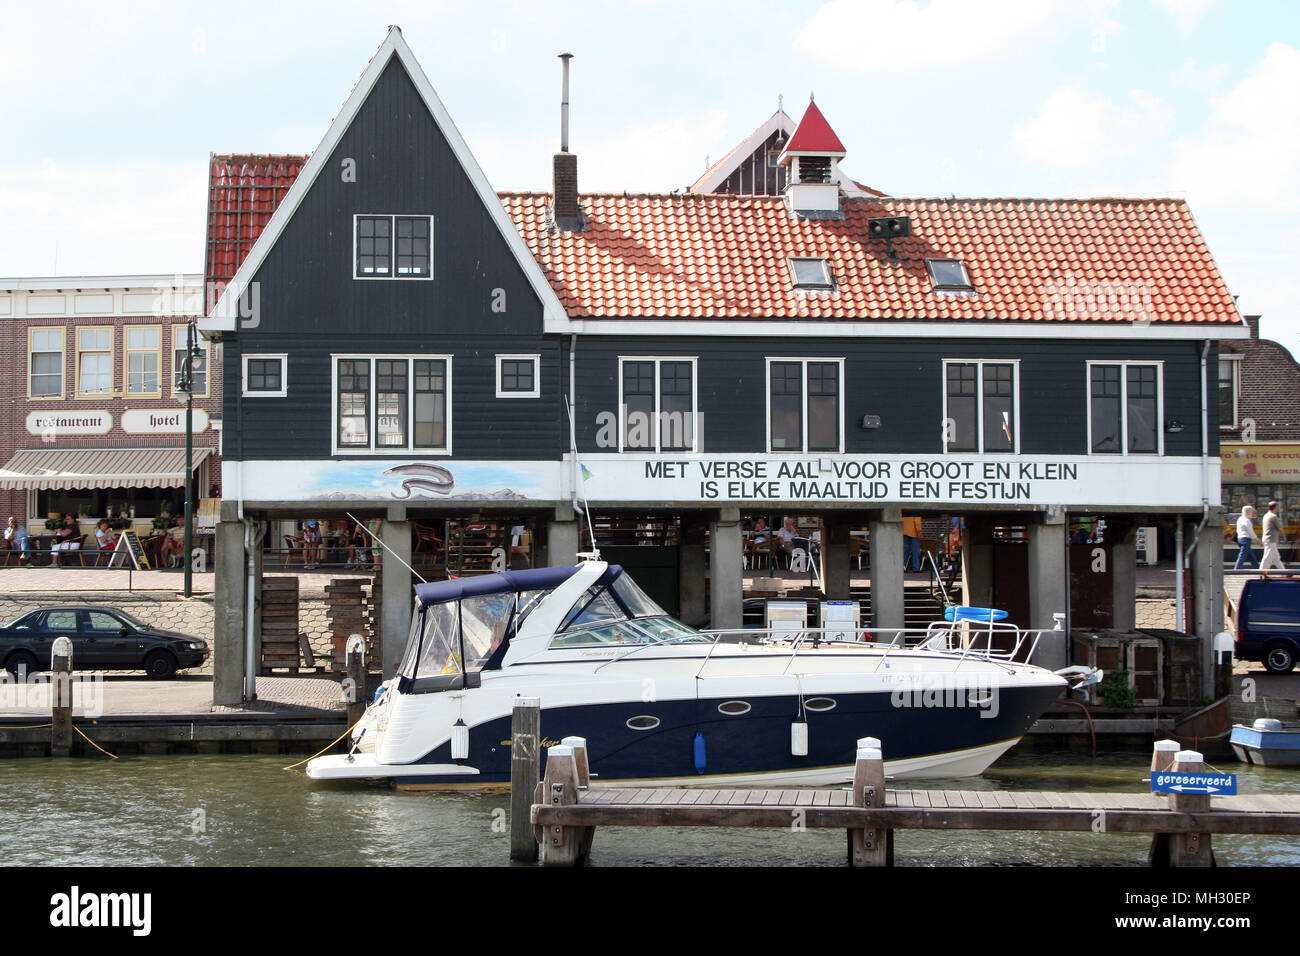 Netherlands,North Holland,Volendam, june 2017: Fish auction in the harbor - Stock Image